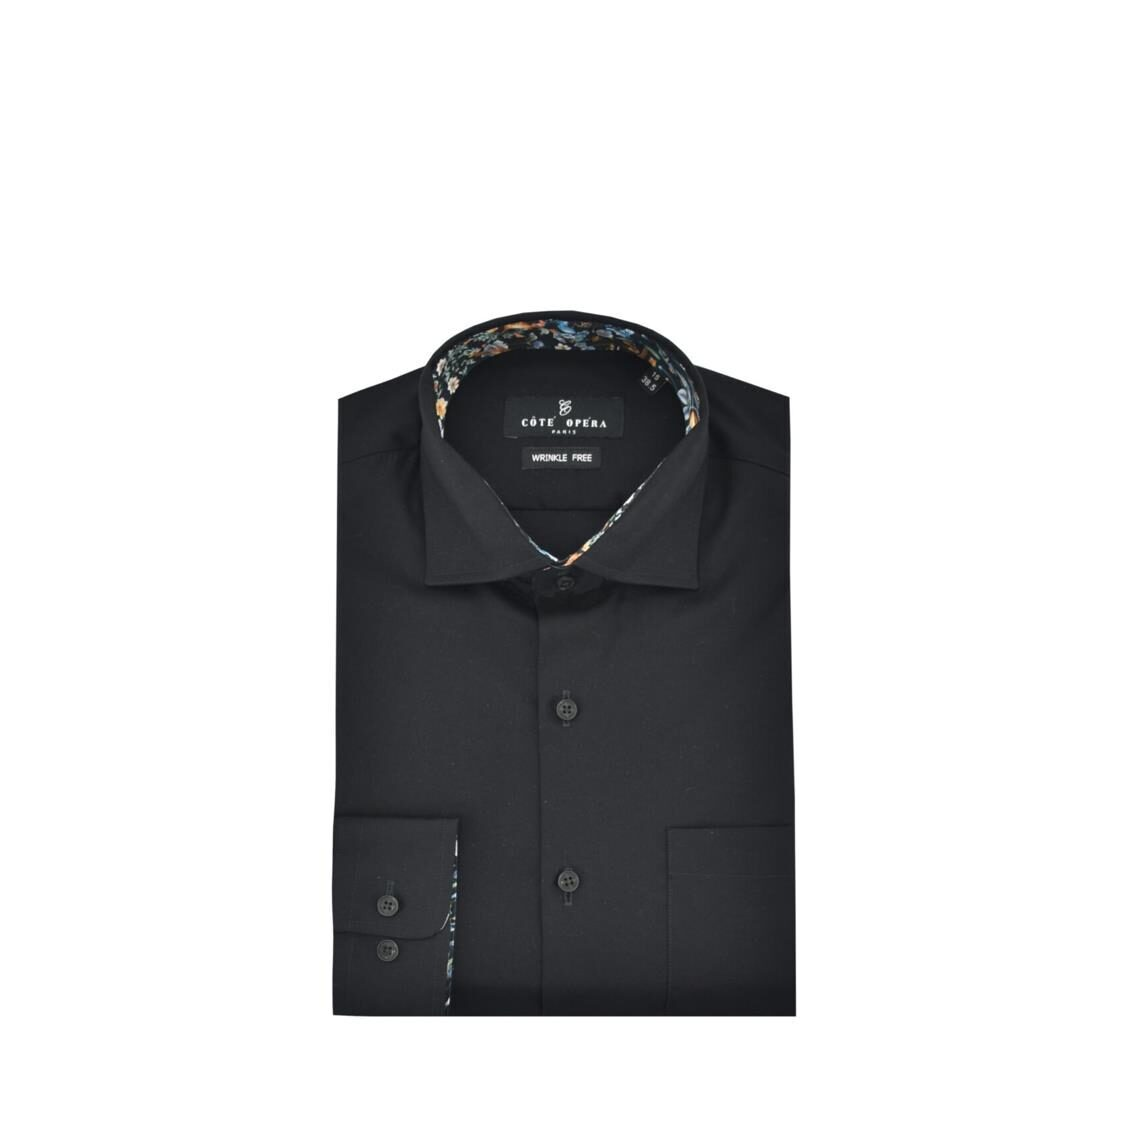 Cote Opera Long-Sleeved Shirt with Wrinkle-Free  Moist Cured finish - Black